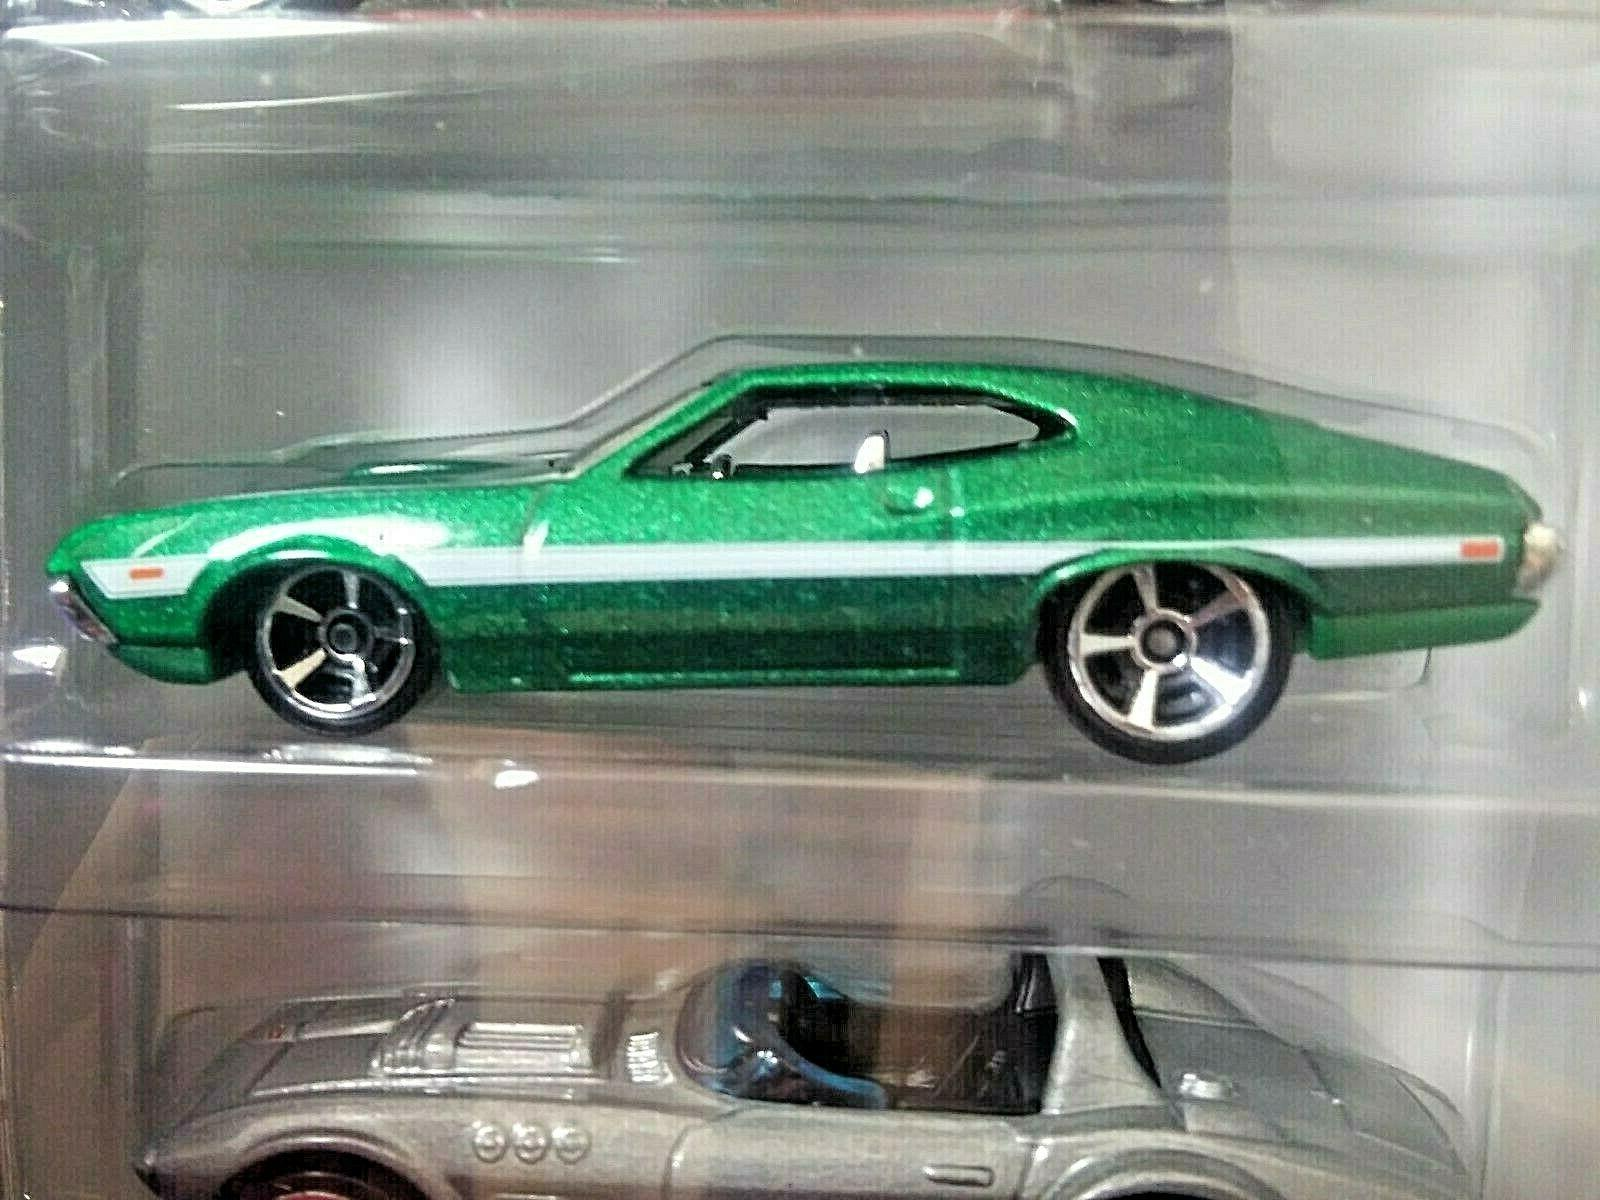 HOT WHEELS AND FURIOUS RACERS MINT BOX